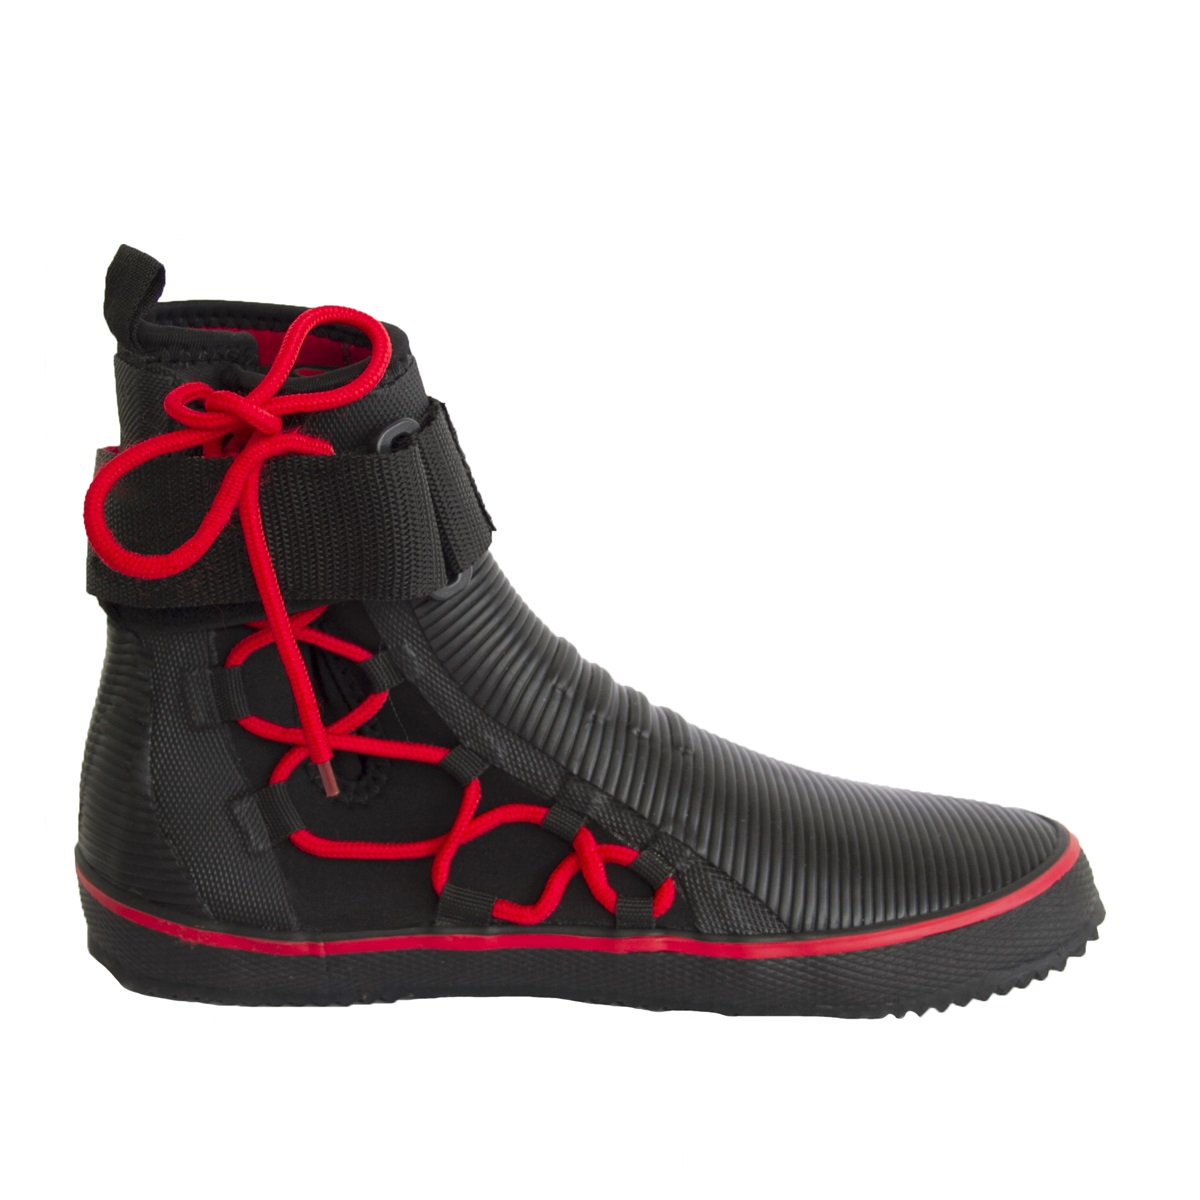 GUL 5mm BS PRO LACE BOOT vel. 4 - BO1304 blk/red